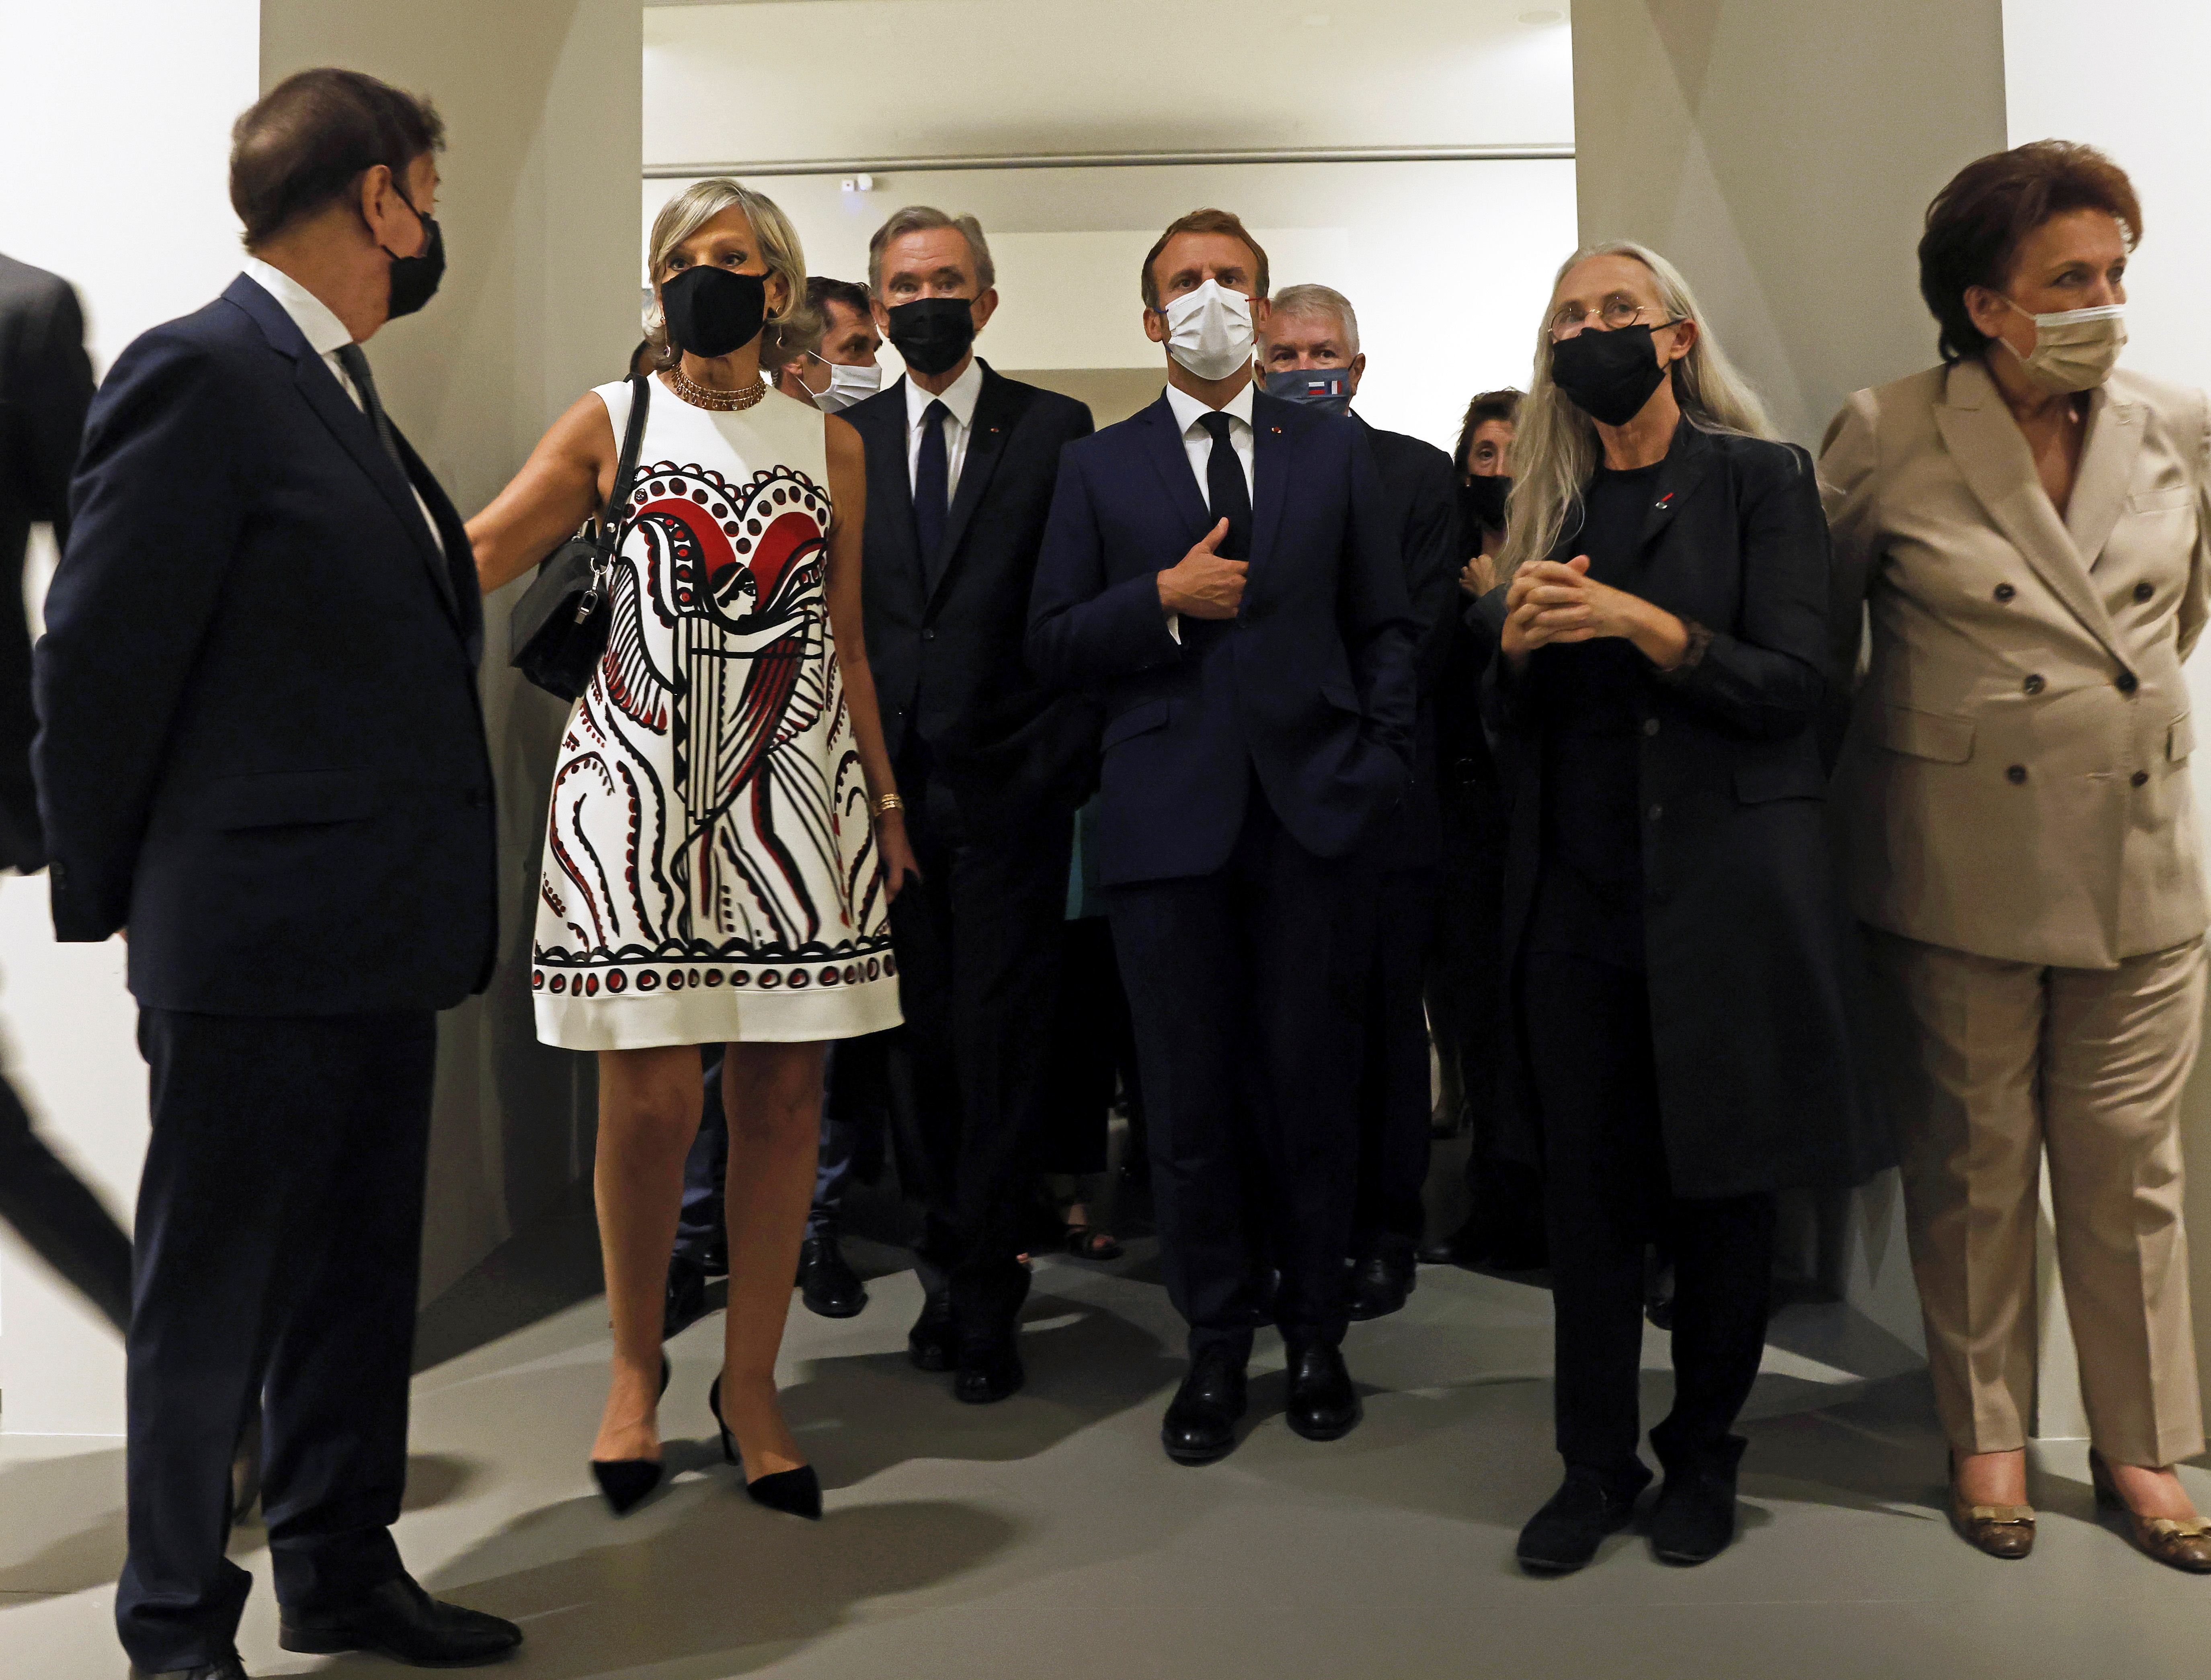 French President Emmanuel Macron visits the exhibition 'The Morozov Collection, Icons of Modern Art' at Foundation Louis Vuitton in Paris, France, September 21, 2021. Yoan Valat/Pool via REUTERS